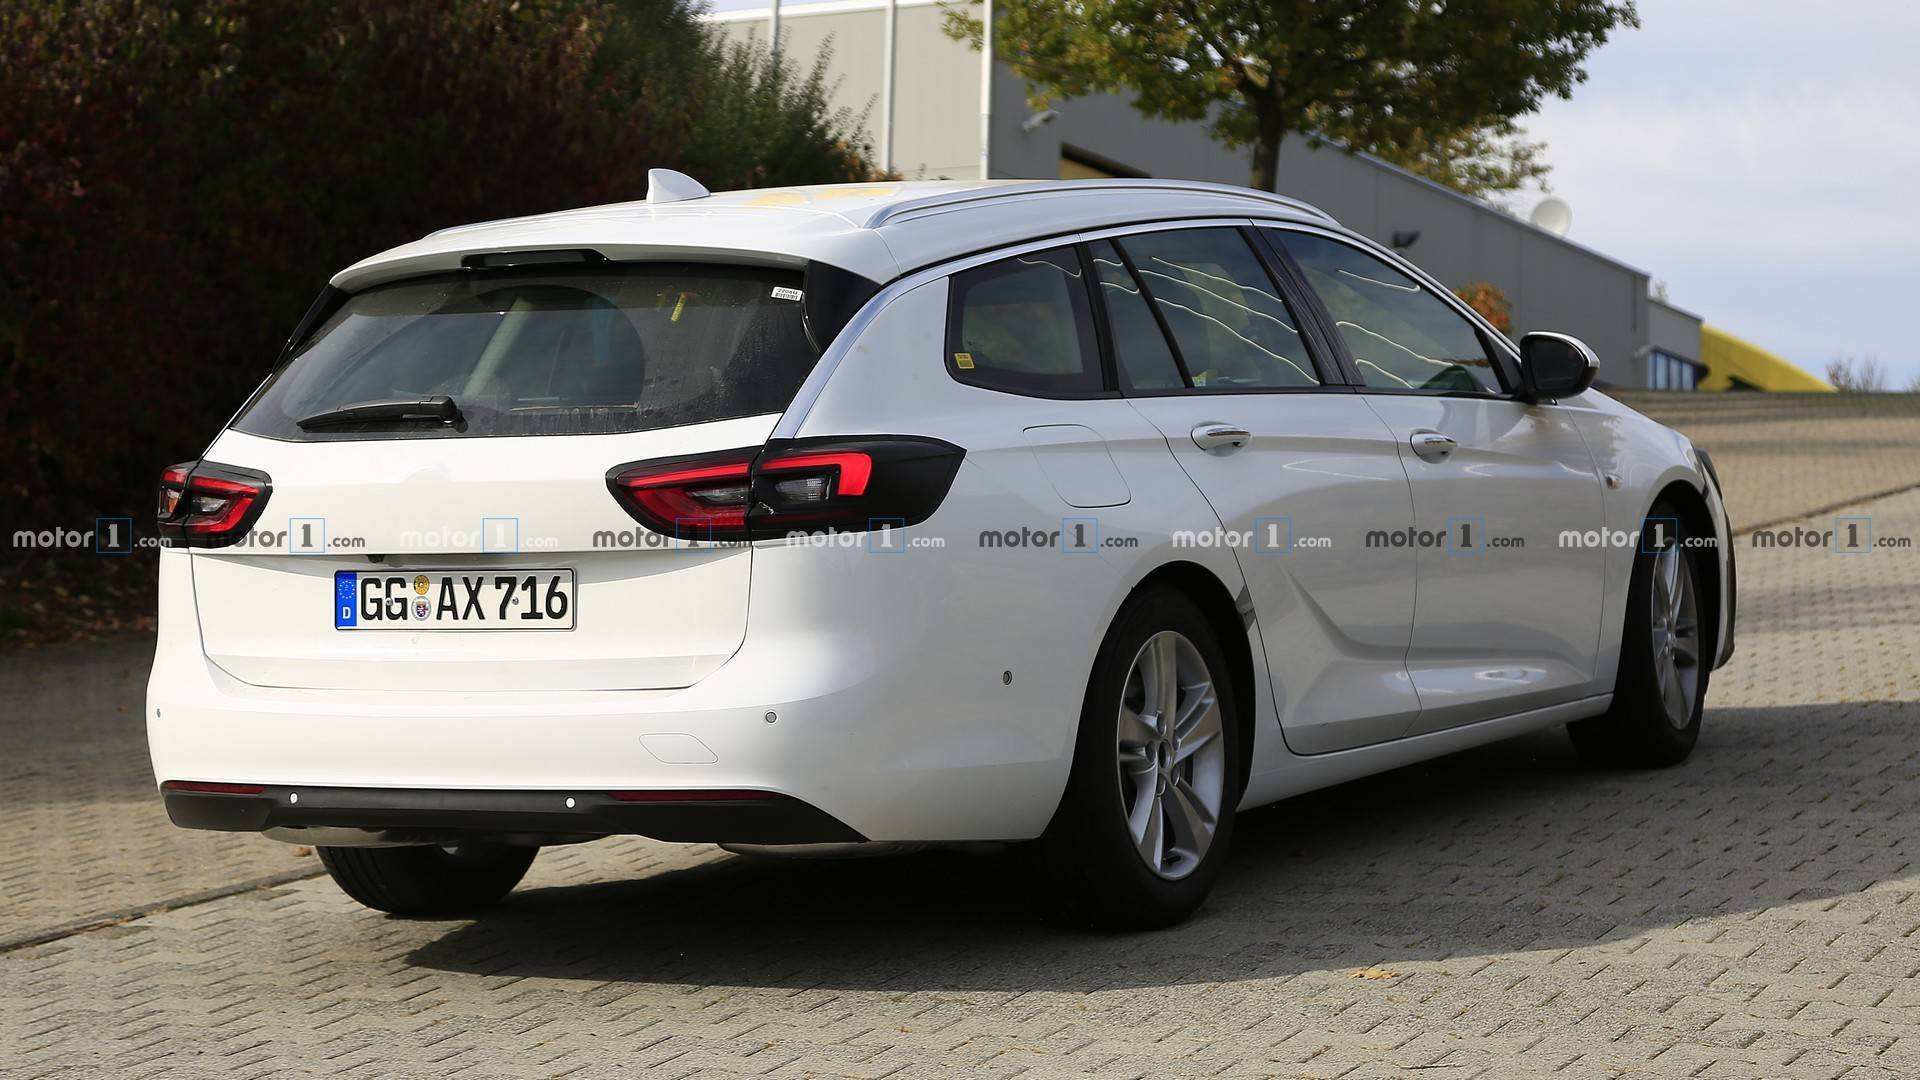 39 All New Opel Insignia Sports Tourer 2020 Picture for Opel Insignia Sports Tourer 2020